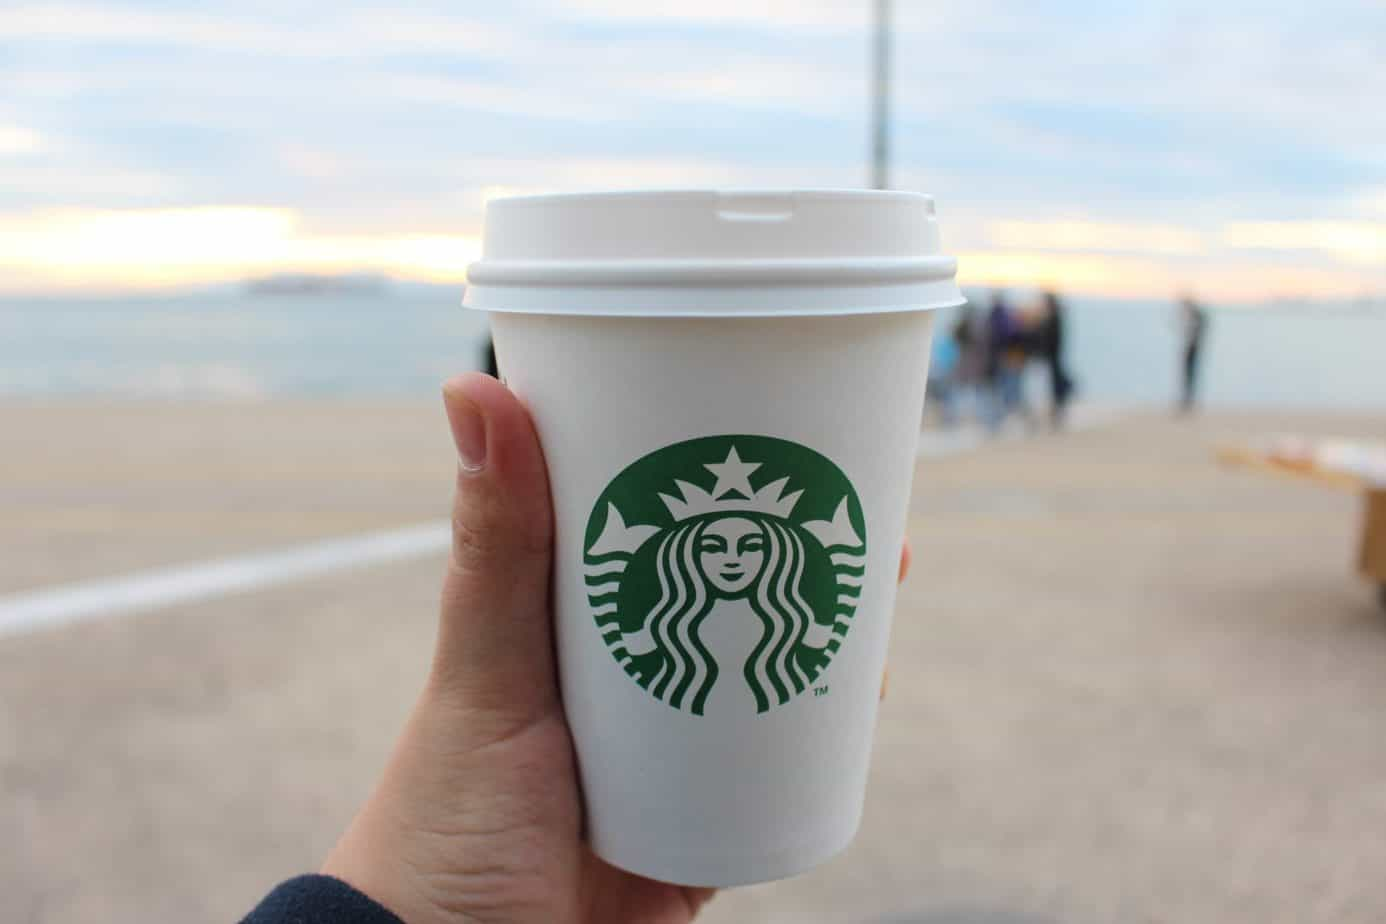 Free Starbucks Coffee for Front-Line Responders